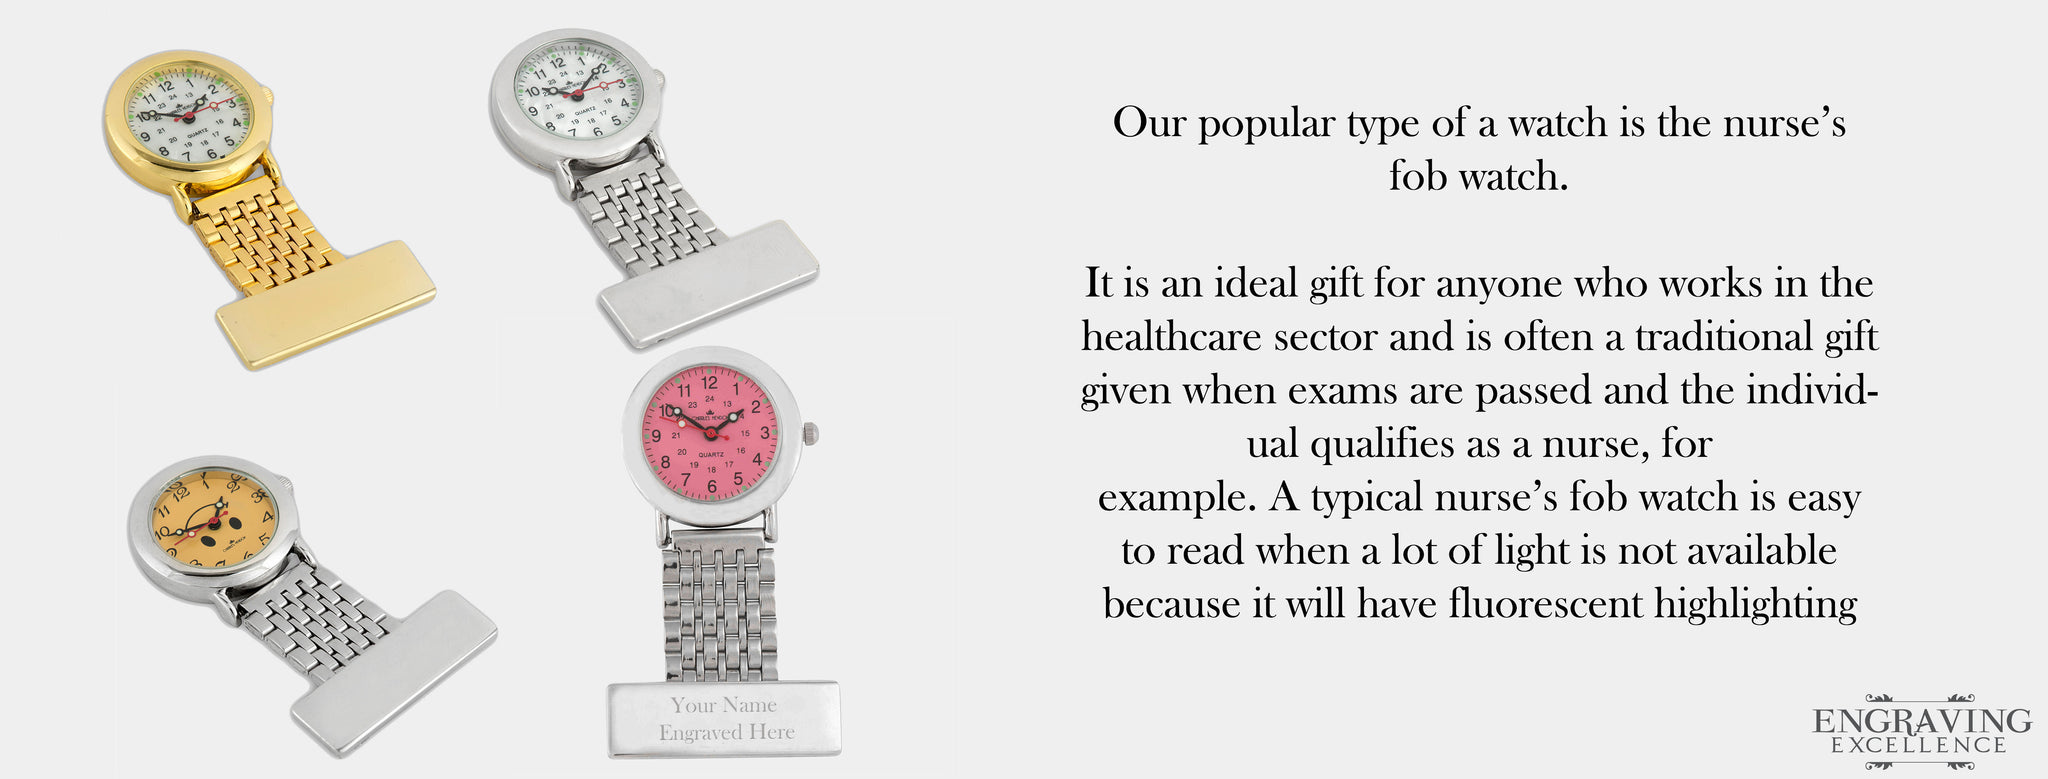 Our popular type of a watch is the nurse's fob watch.   It is an ideal gift for anyone who works in the healthcare sector and is often a traditional gift given when exams are passed and the individual qualifies as a nurse, for   example. A typical nurse's fob watch is easy to read when a lot of light is not available  because it will have fluorescent highlighting on the hands and dial face.